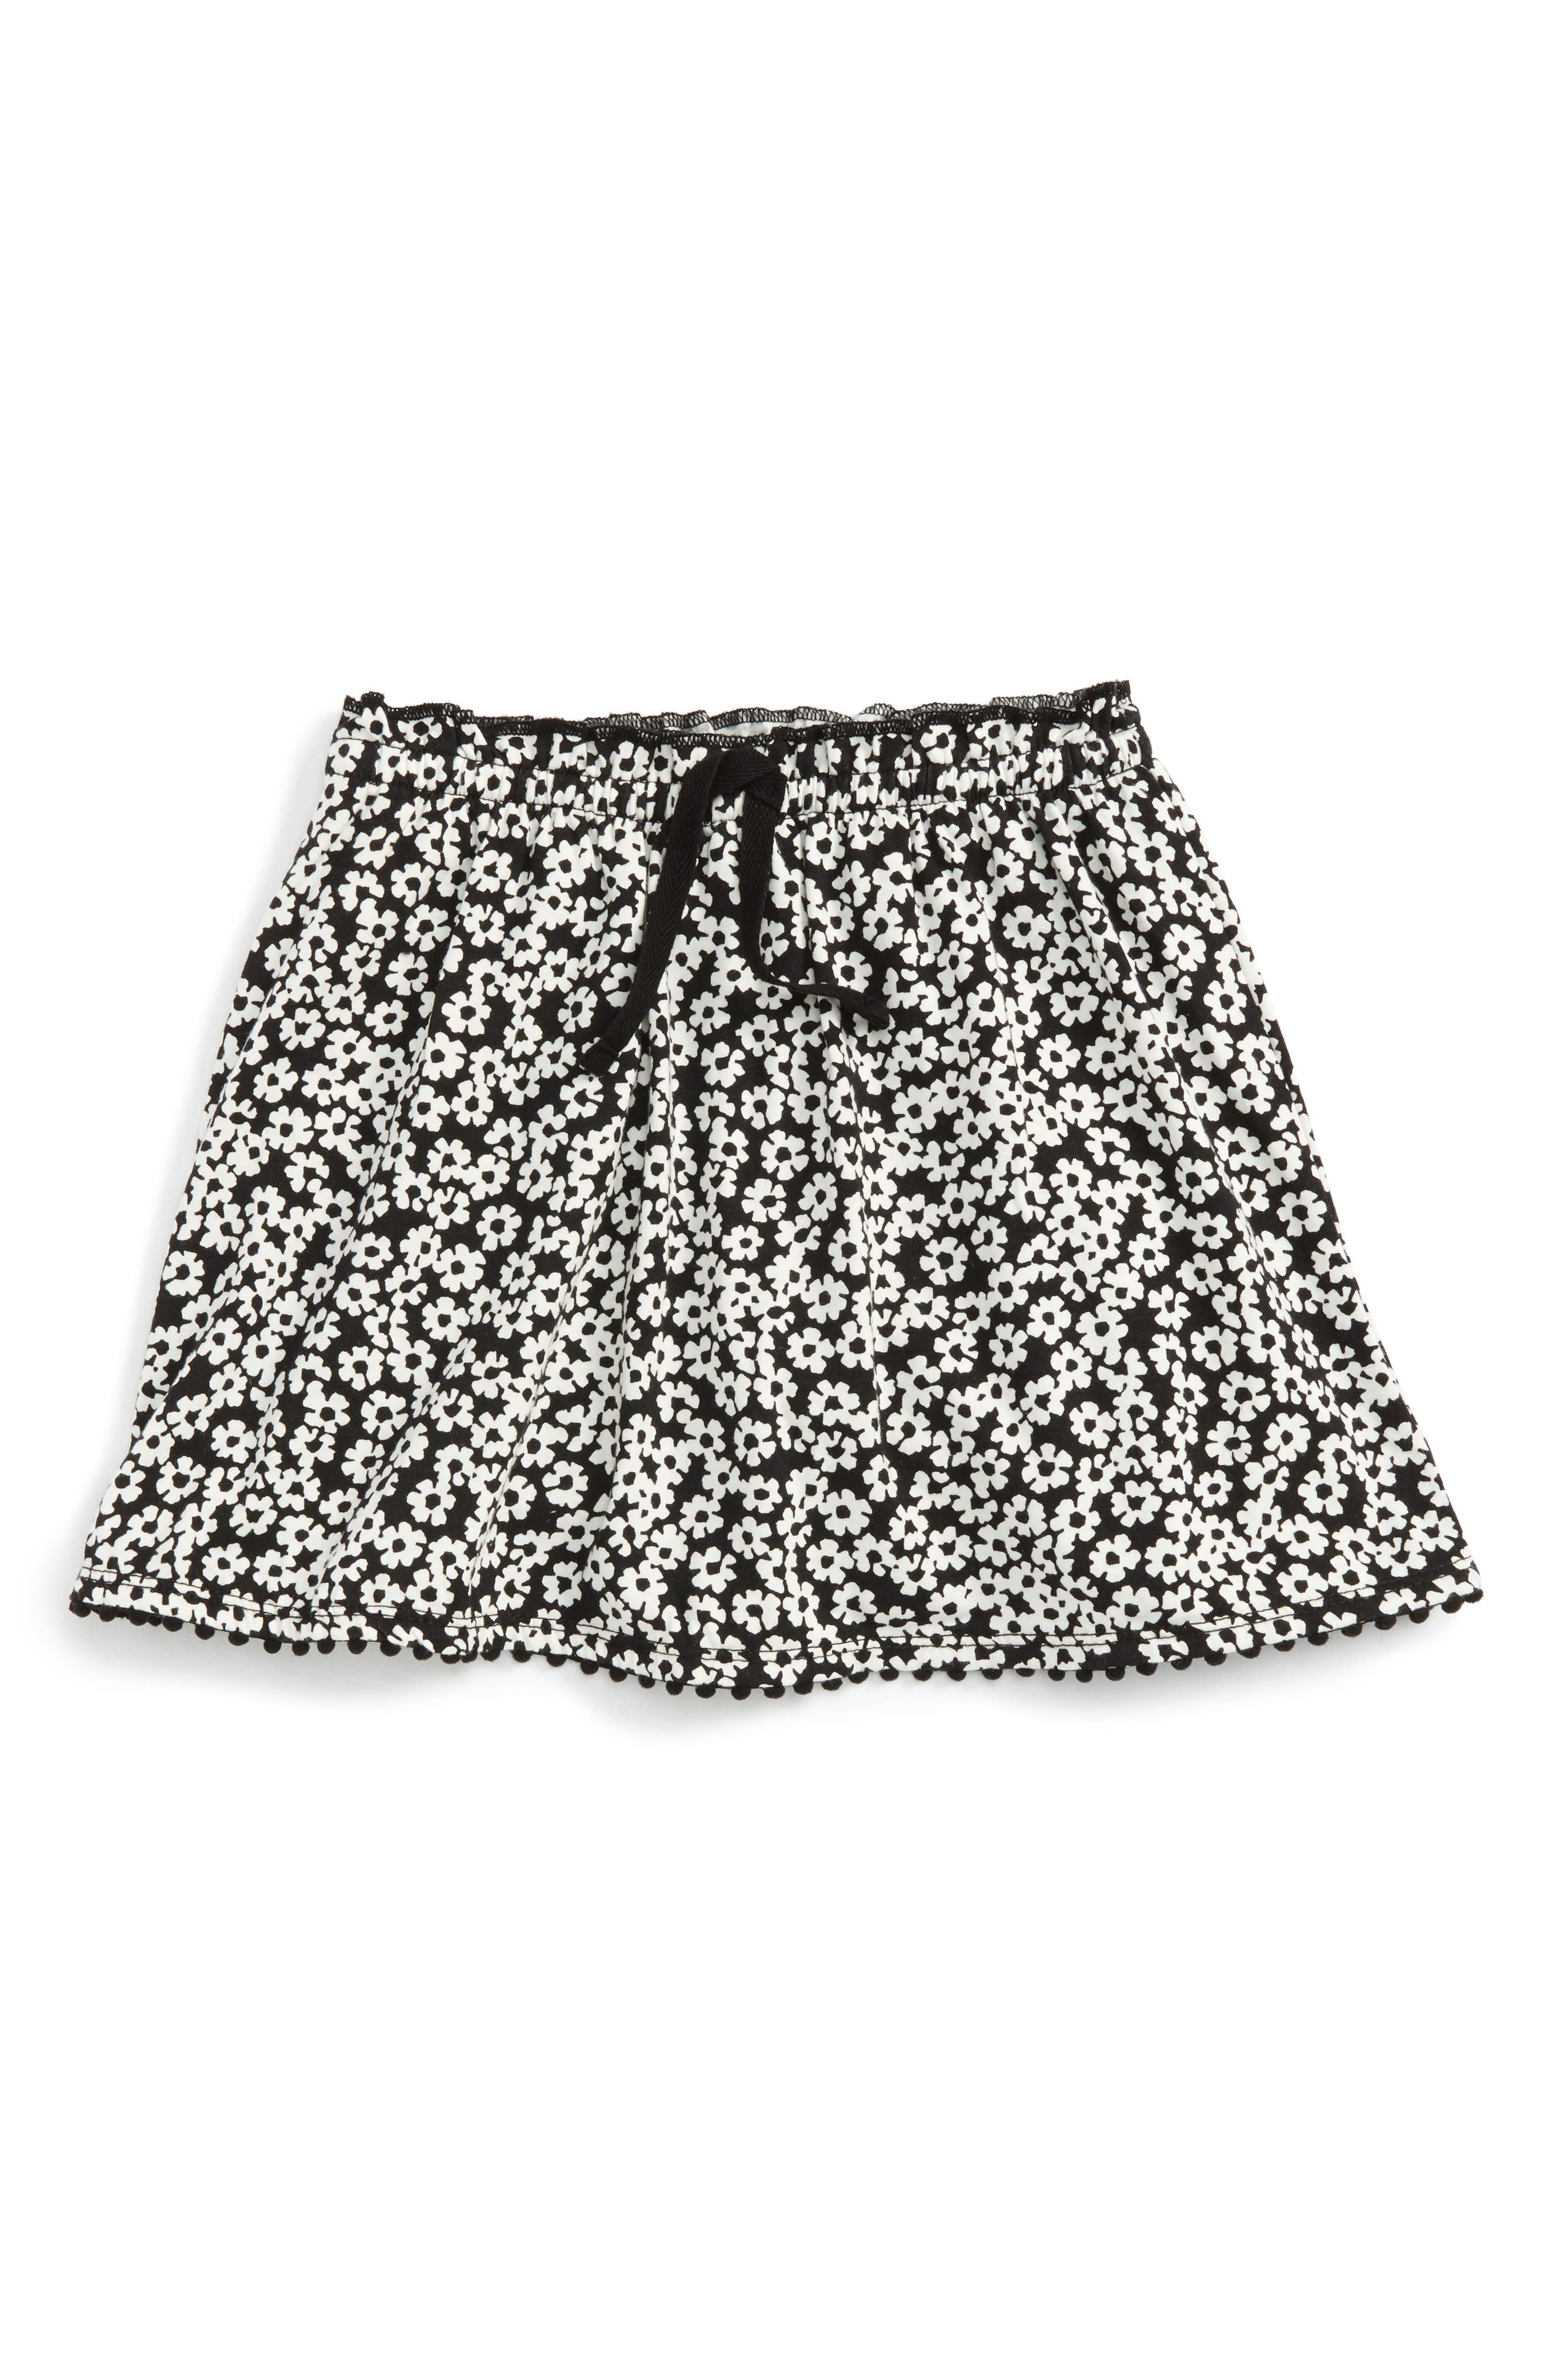 Tucker + Tate Floral Print Skort (Toddler Girls, Little Girls & Big Girls)